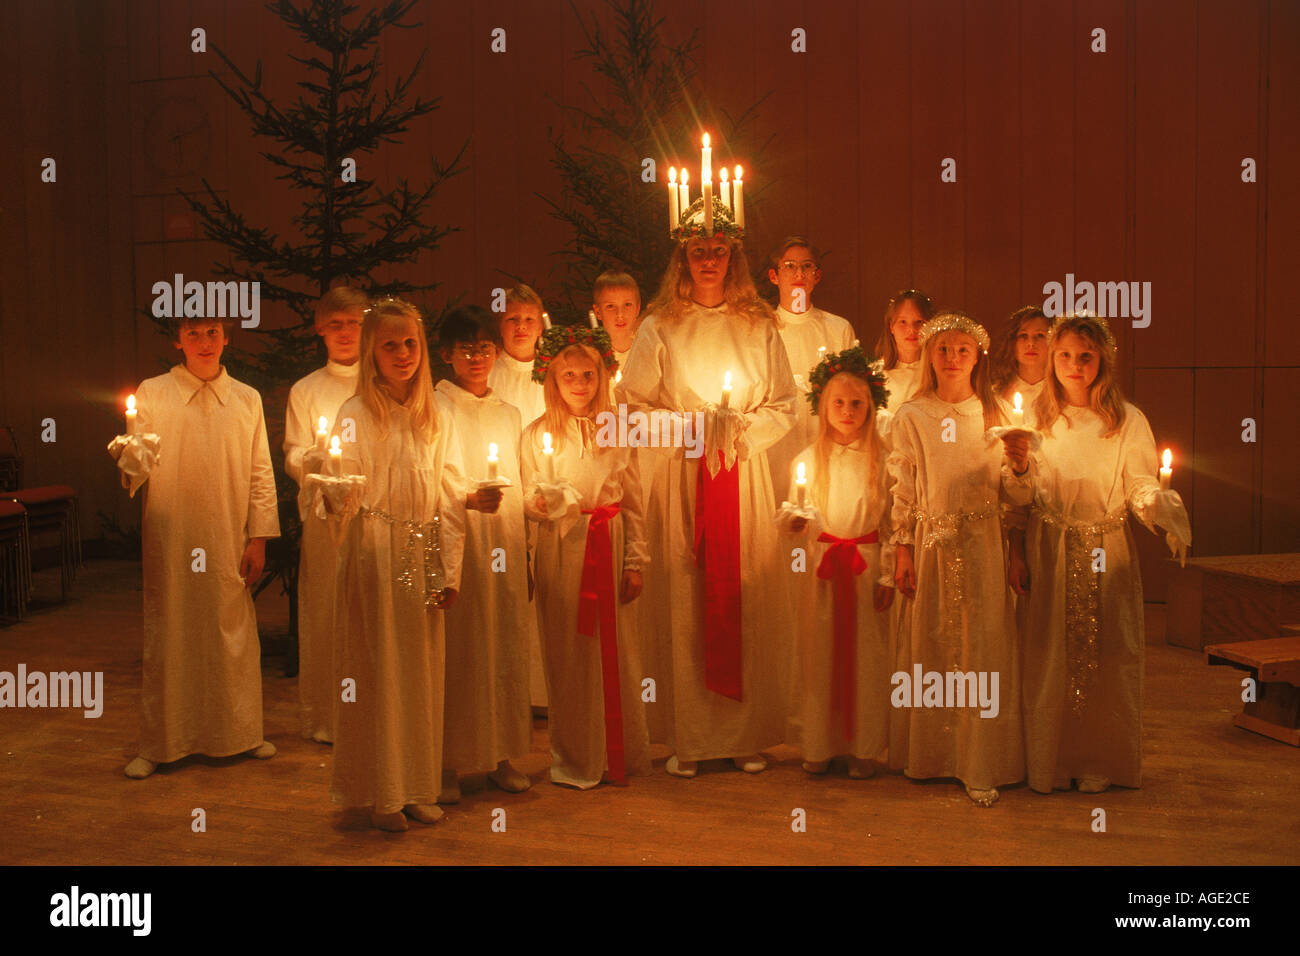 Choir of children with candles on Saint Lucia Day in Sweden - Stock Image